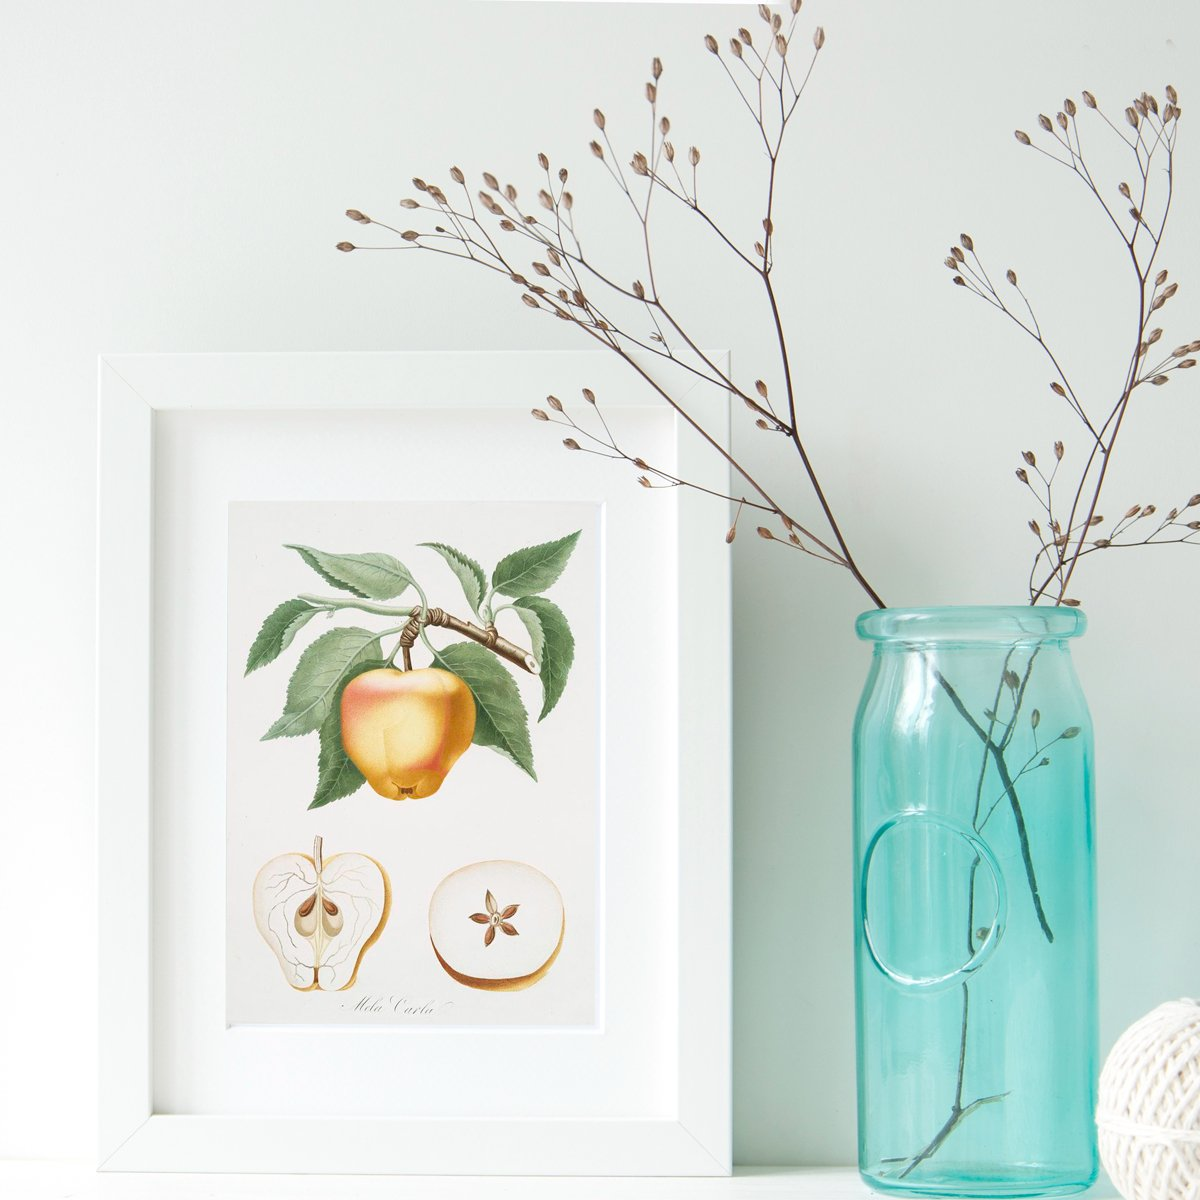 Celebrate the arrival of Spring with these free pintable vintage fruit Illustrations and Cards from The Birch Cottage!